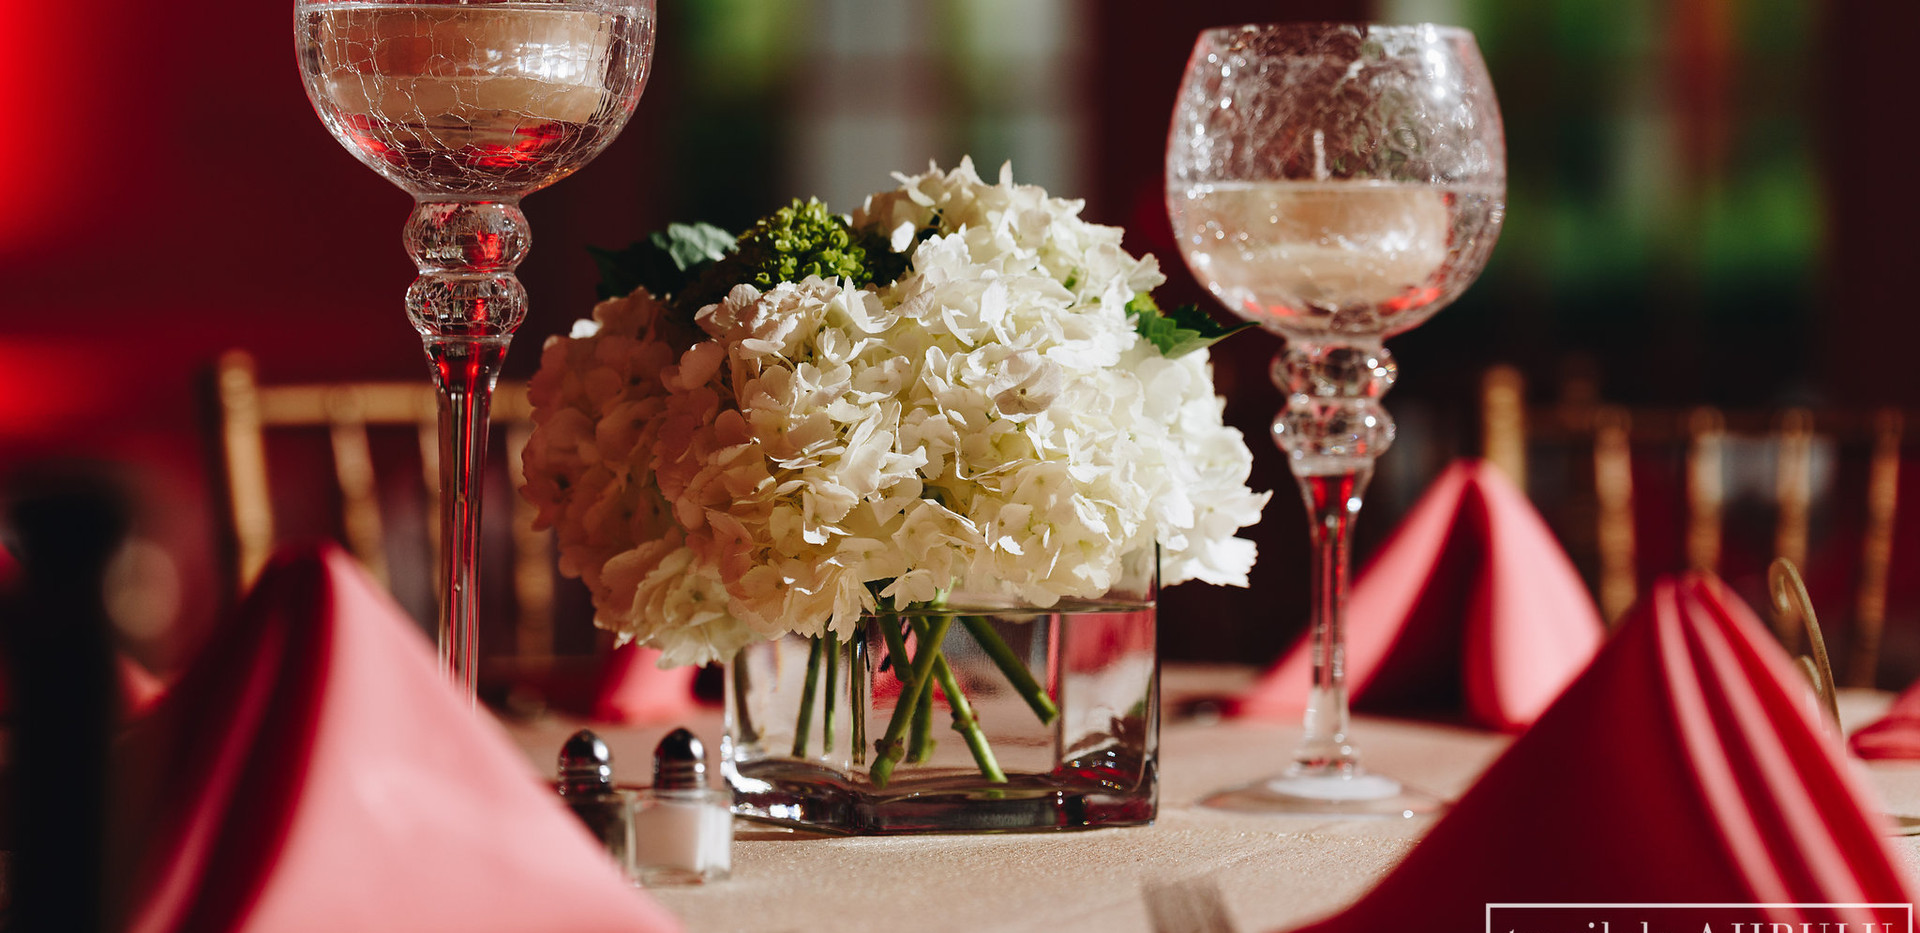 Tablescape